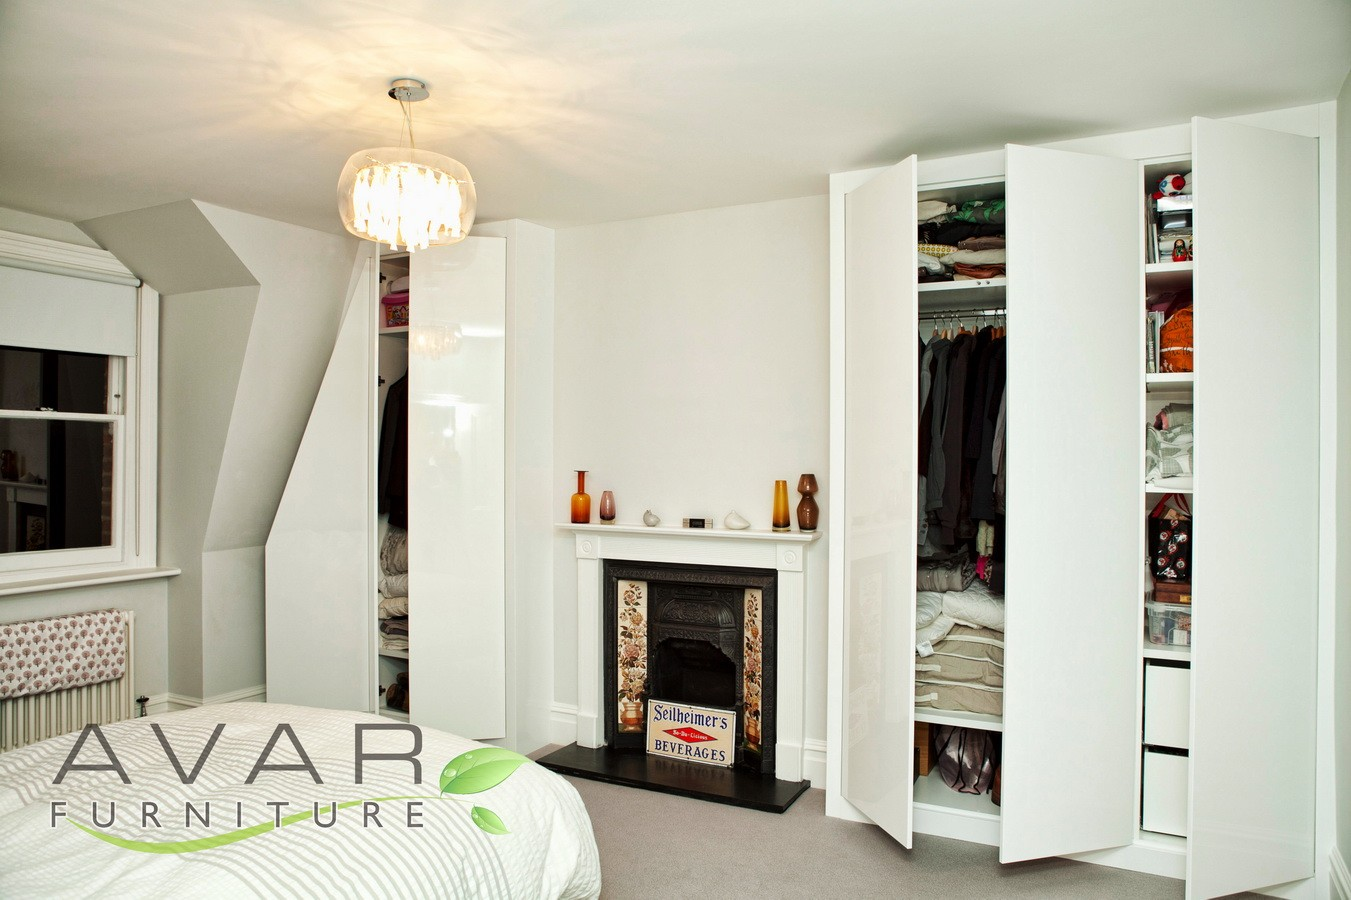 bedroom wardrobes ideas fitted high gloss bedroom furniture, london, doors opened HBYXQVM